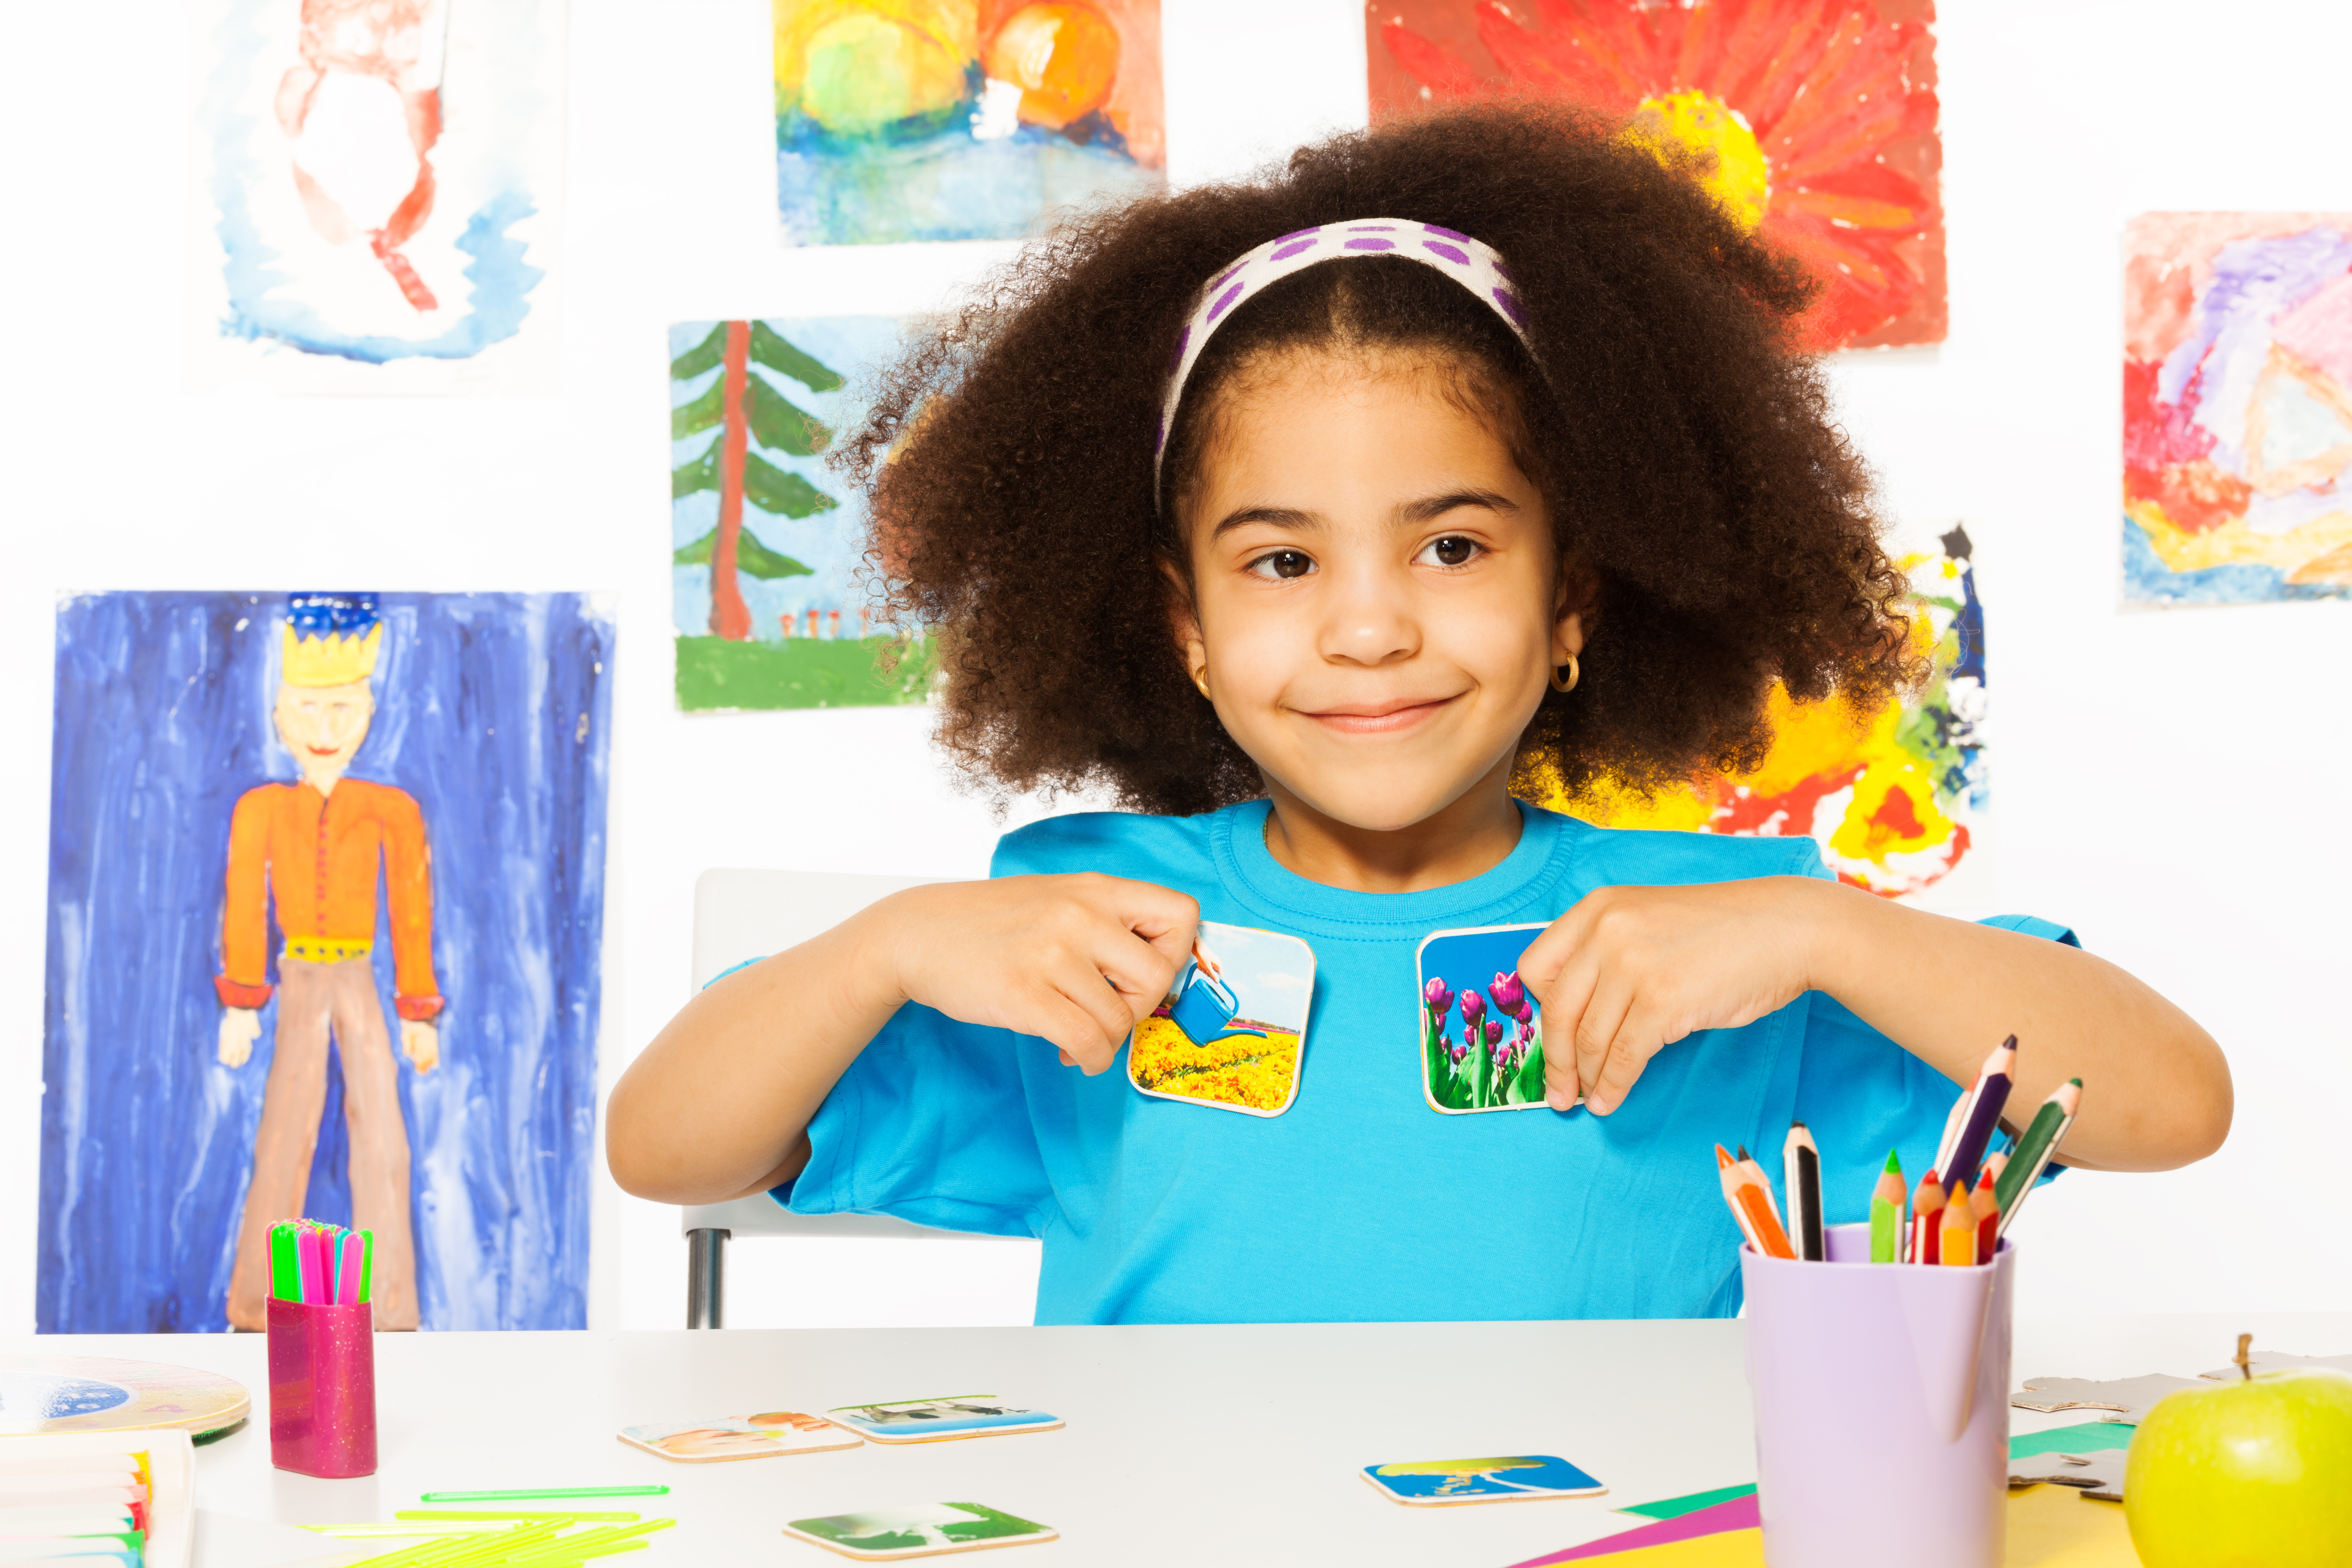 Image of child sitting at a desk